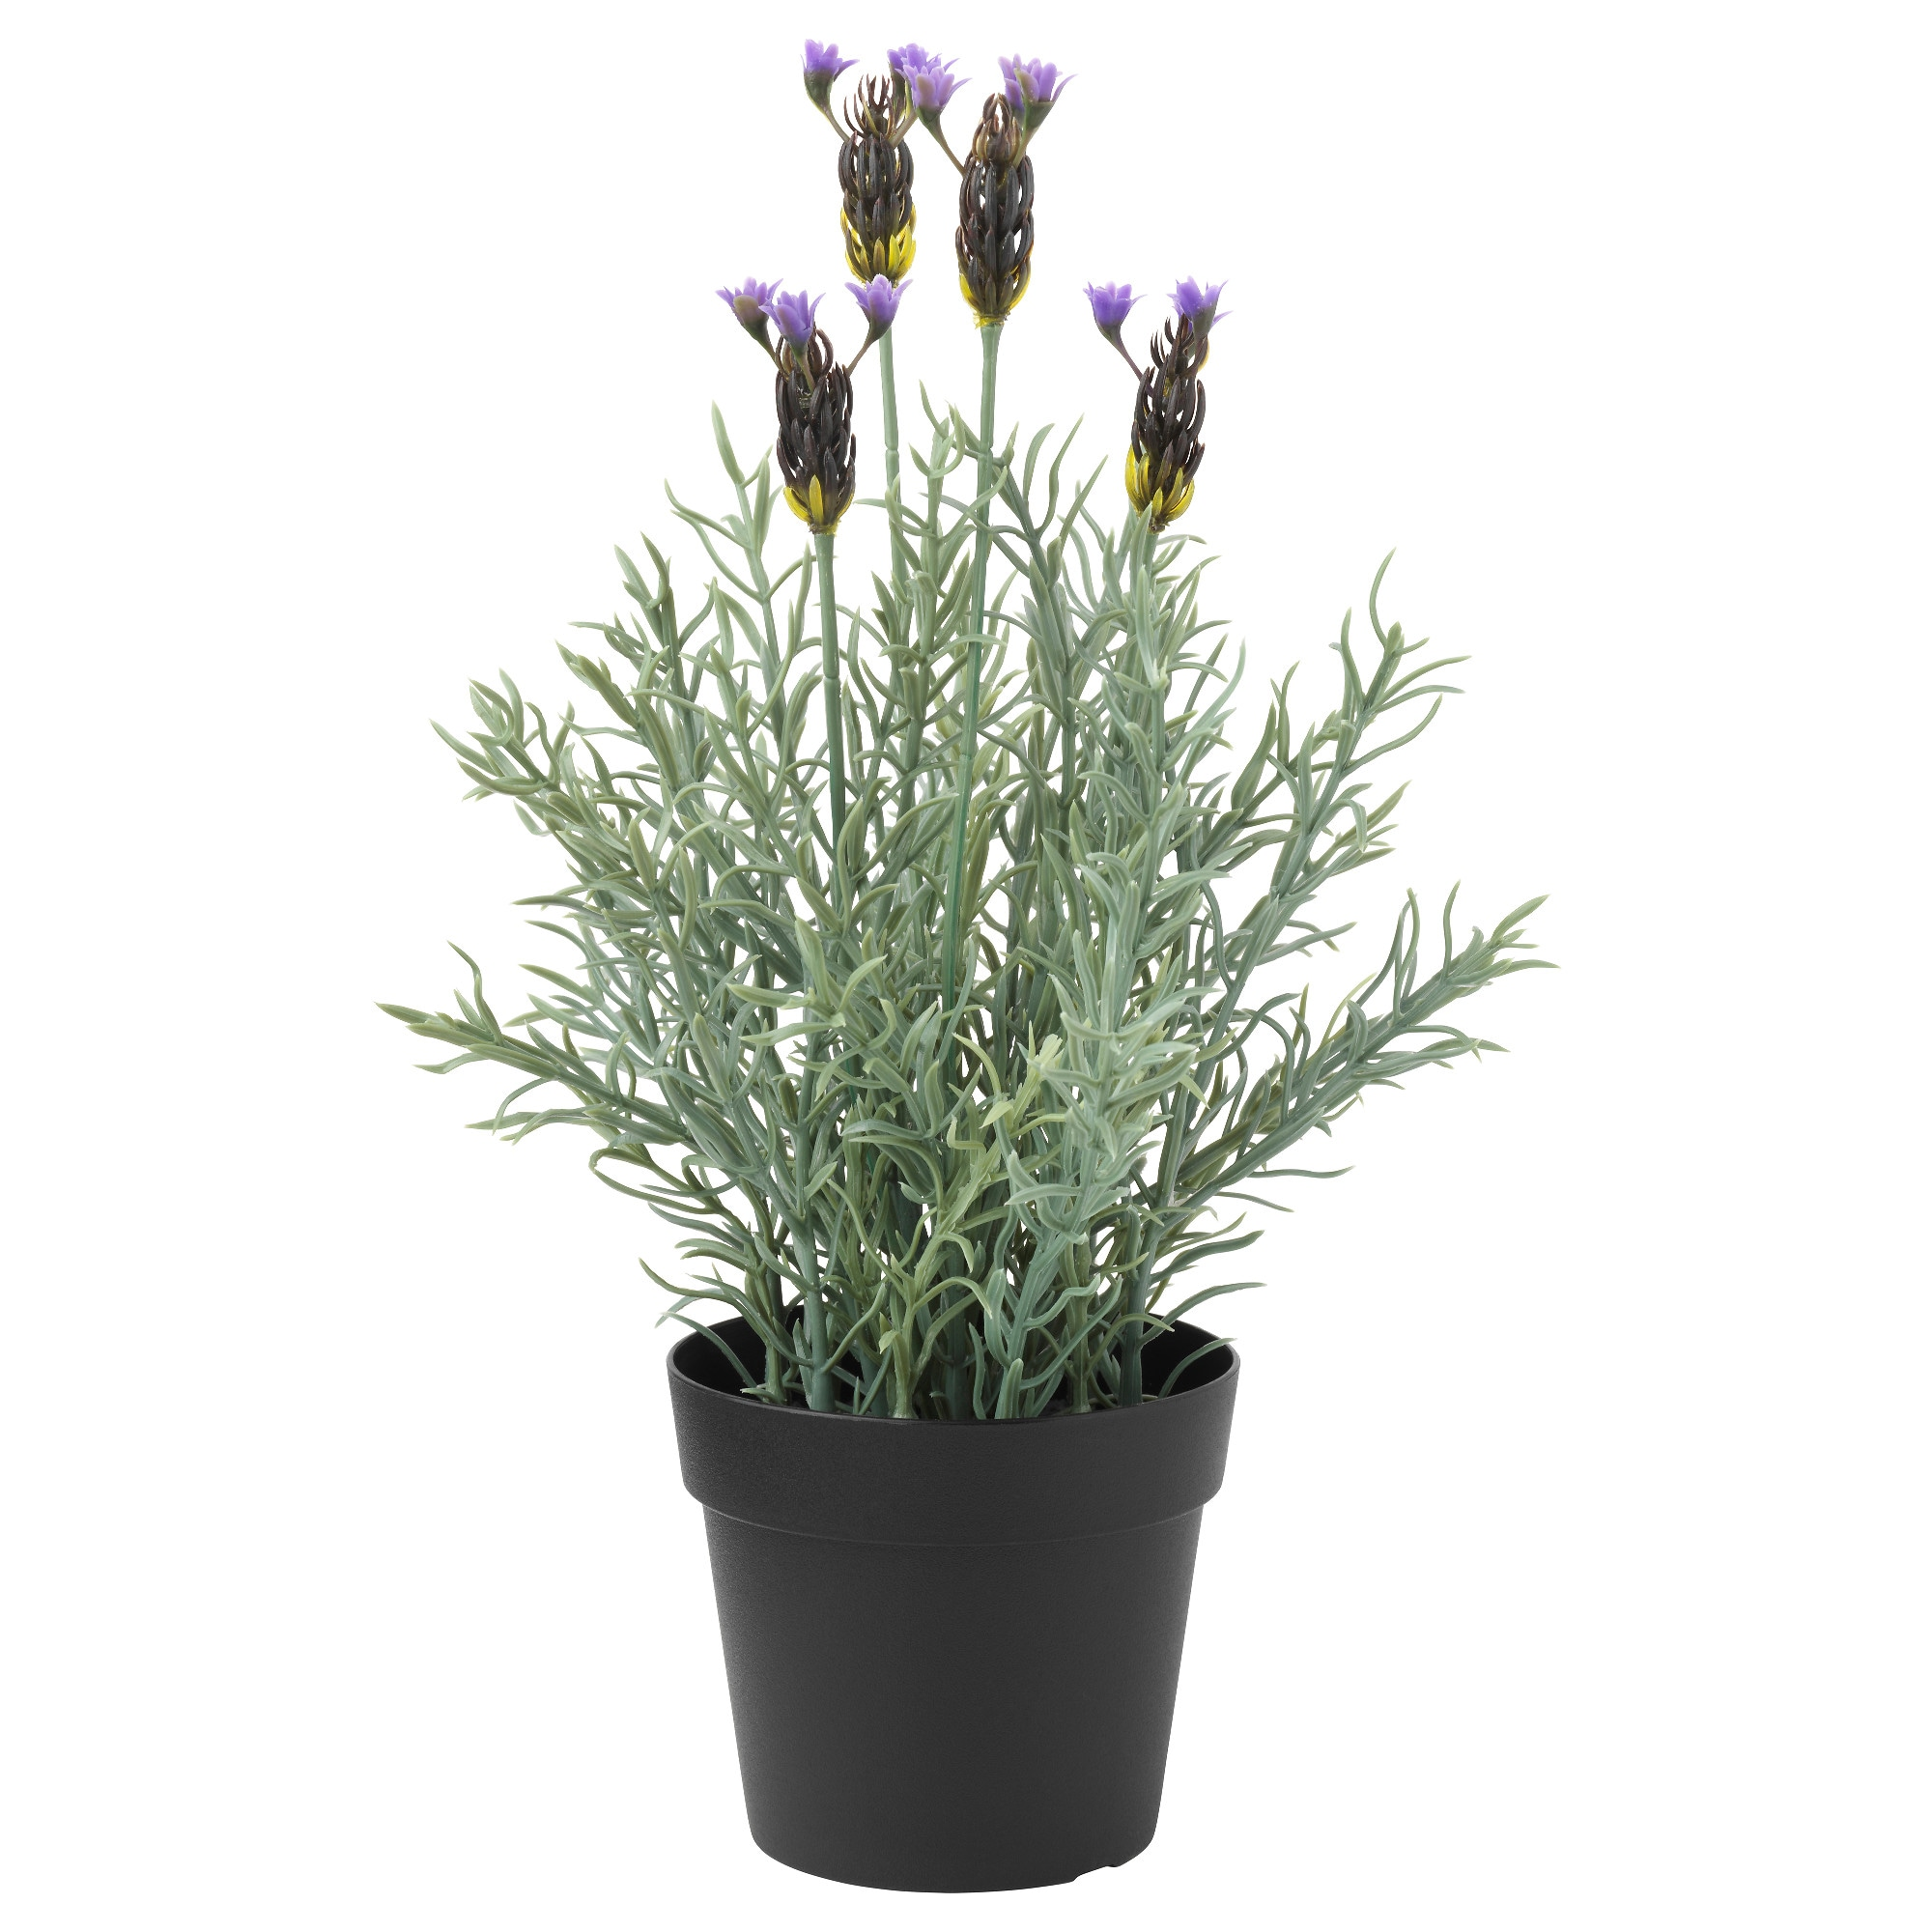 FEJKA Artificial Potted Plant, In/outdoor, Lavender Diameter Of Plant Pot: 9